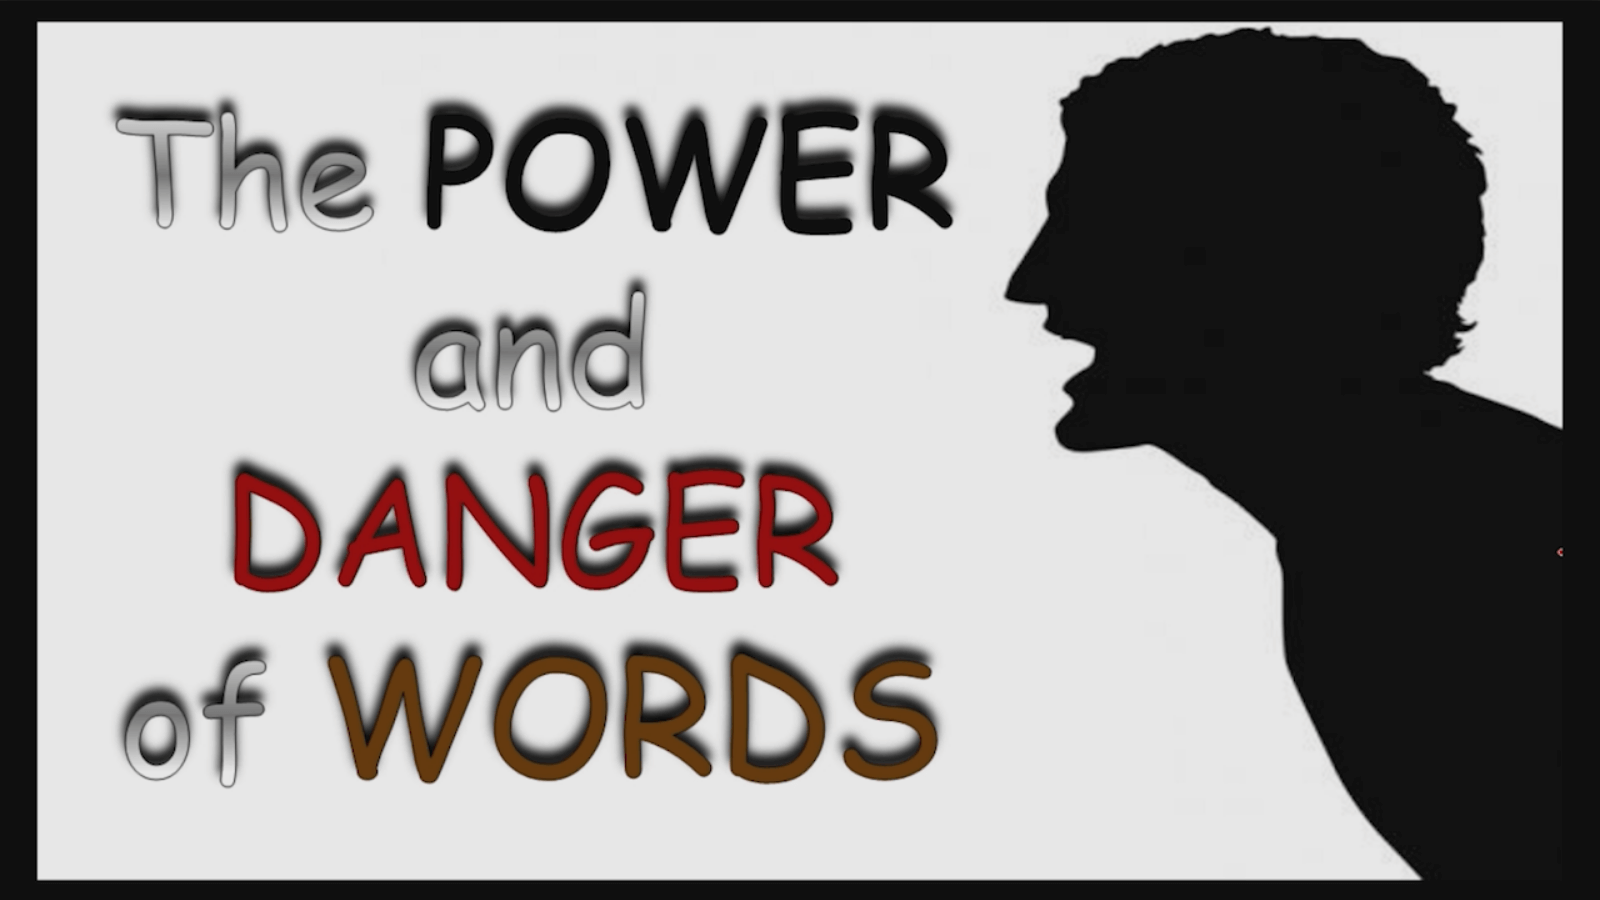 The Power and Danger of Words